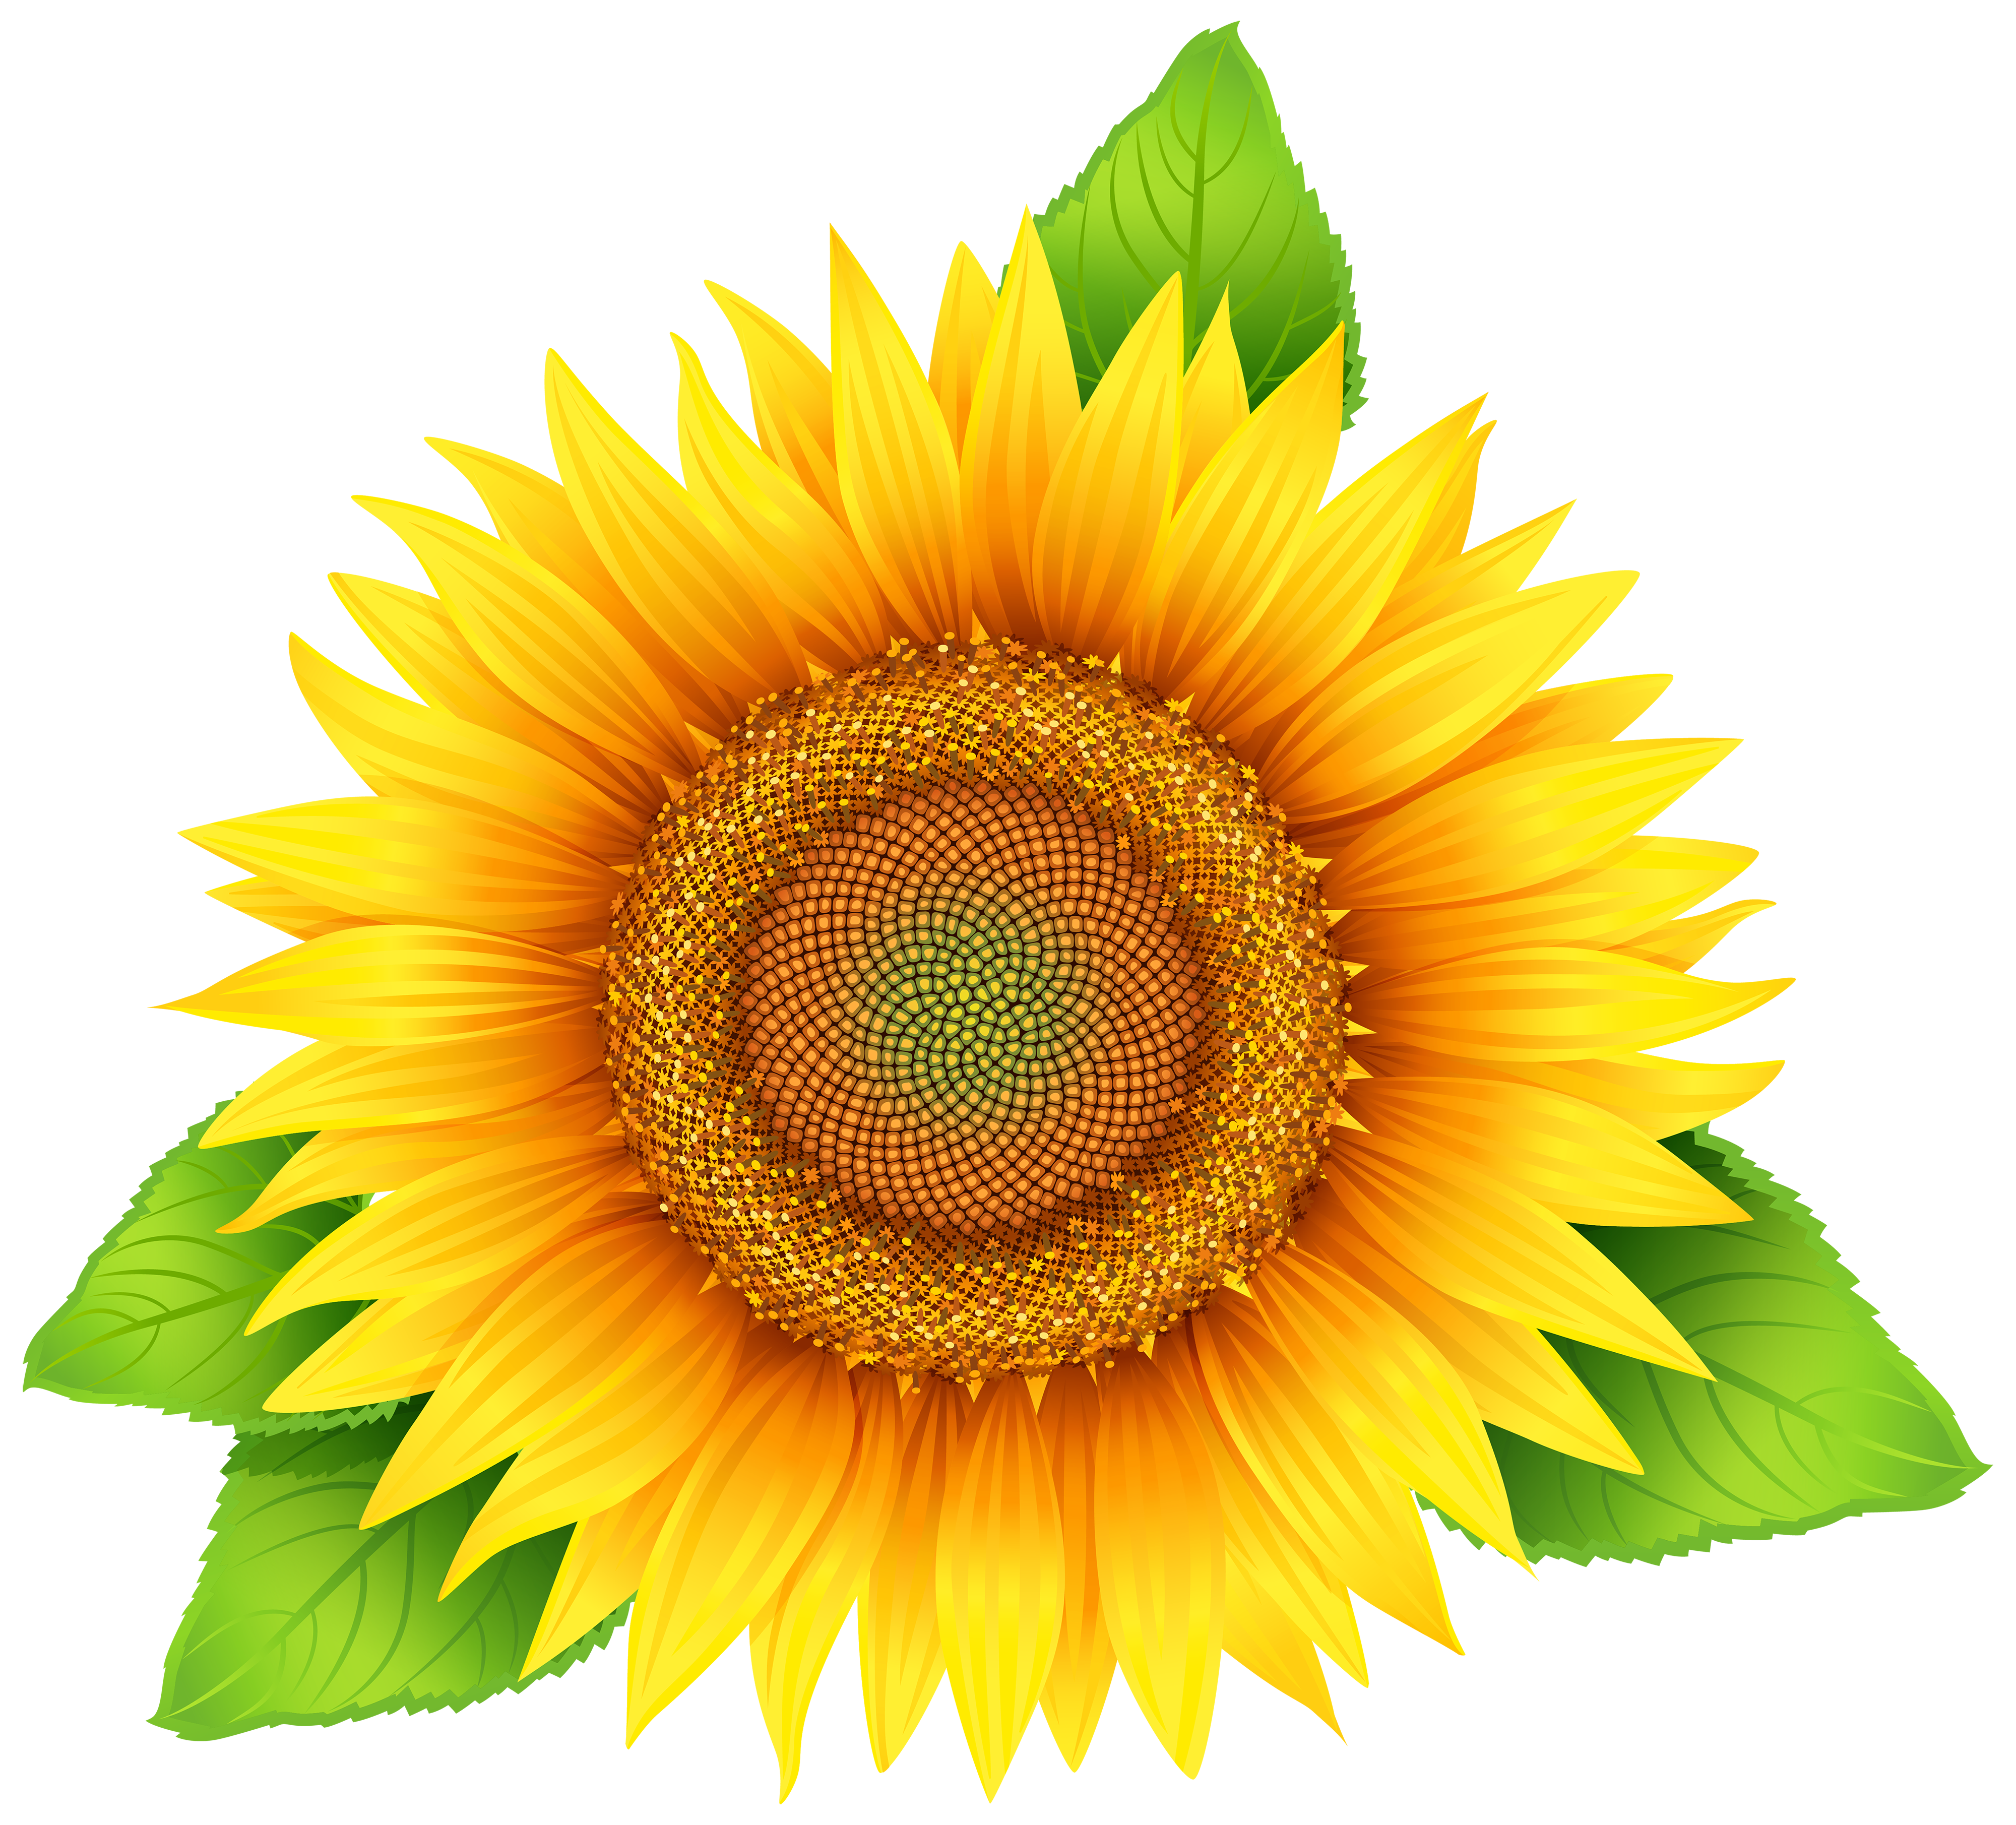 Free clipart sunflowers flowers picture library download Sunflower PNG Clipart Image | Gallery Yopriceville - High-Quality ... picture library download